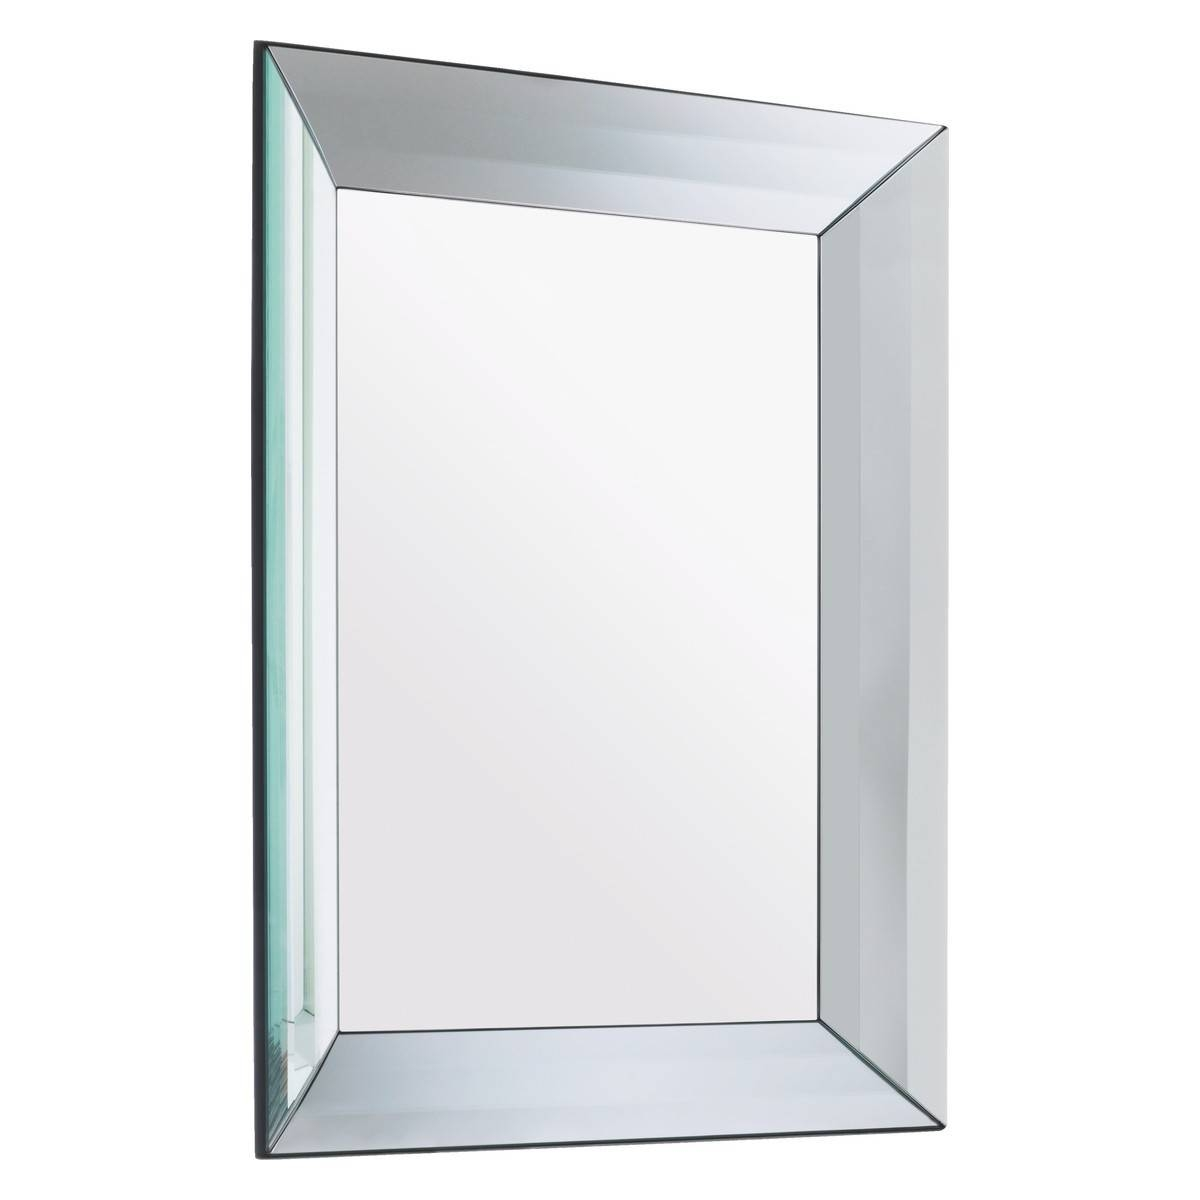 Luella 60 X 80Cm Rectangular Bevelled Wall Mirror | Buy Now At Intended For Bevelled Glass Mirrors (View 11 of 15)